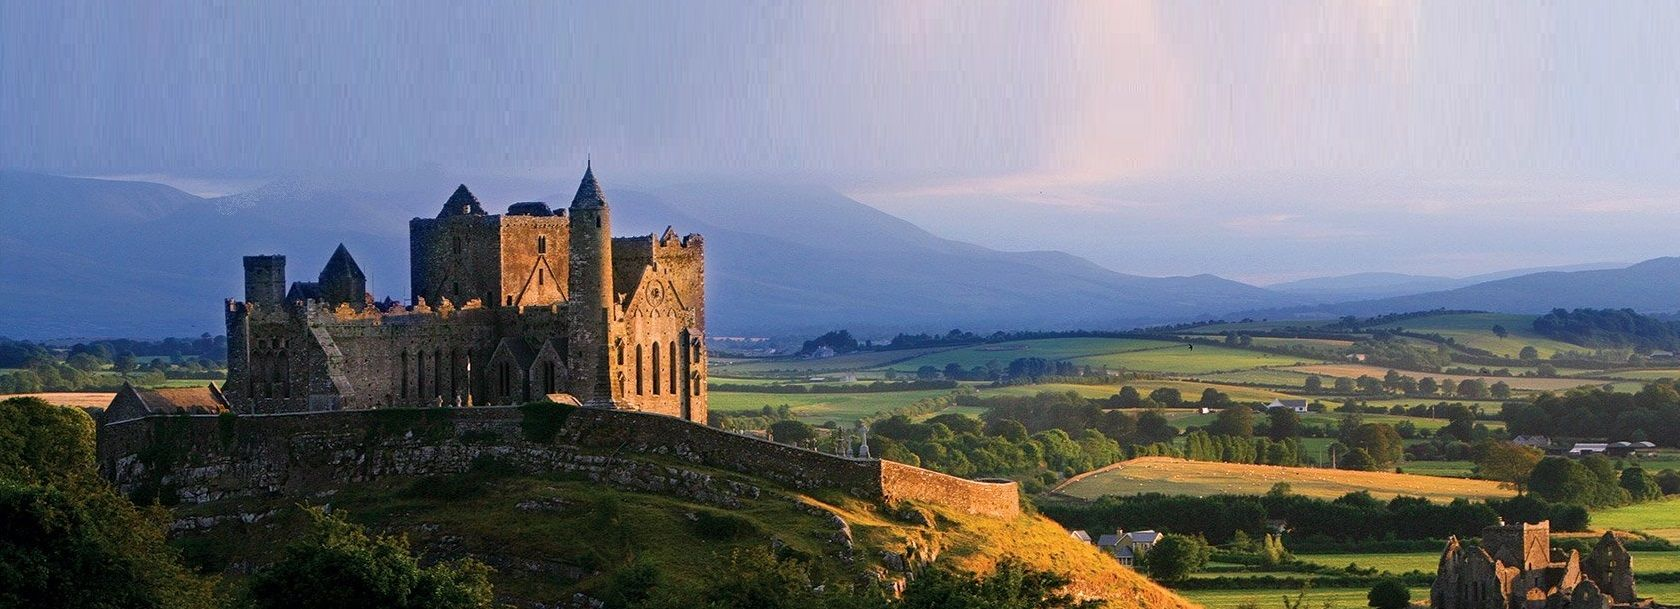 ireland-rock-of-cashel-000-haunted-journeys